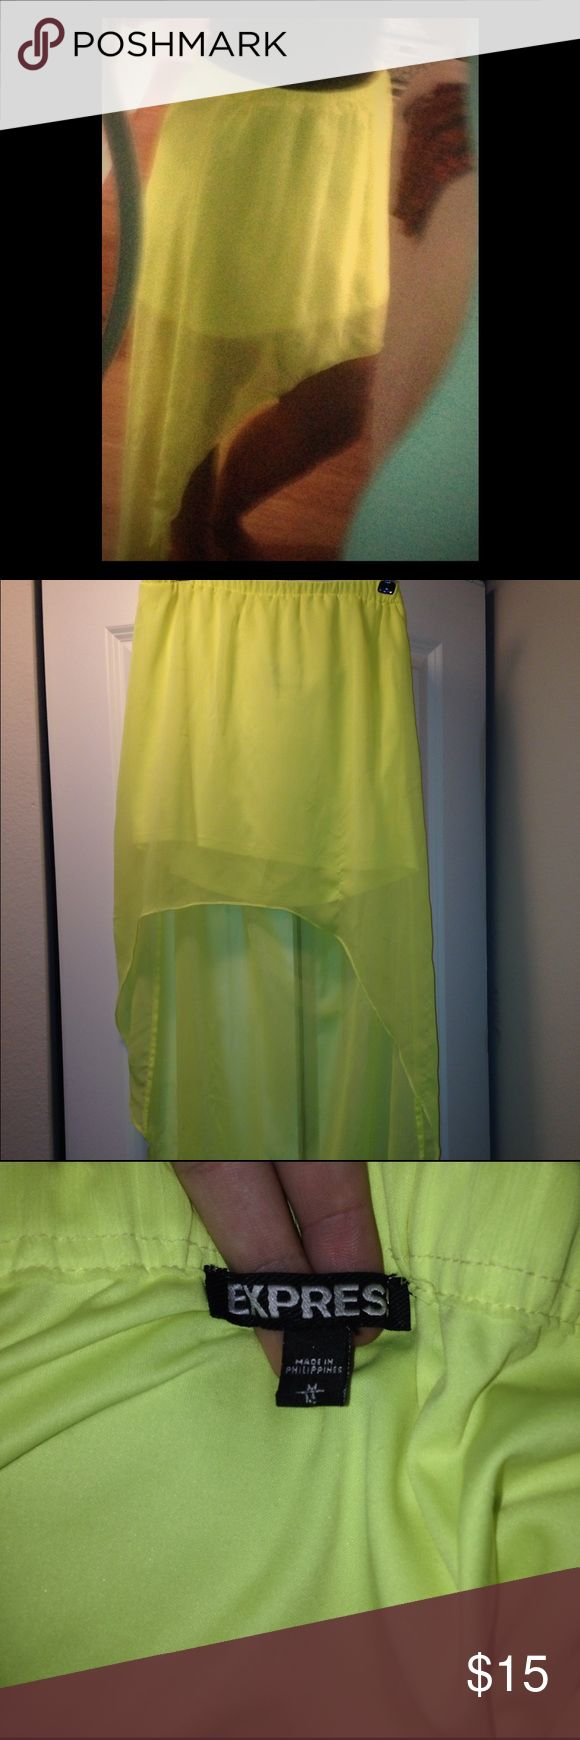 Express HI-Low  Neon Yellow Asymmetrical Skirt Express Hi-Low asymmetrical skirt. Size medium. Elastic waistband. Very good condition. Express Skirts Asymmetrical